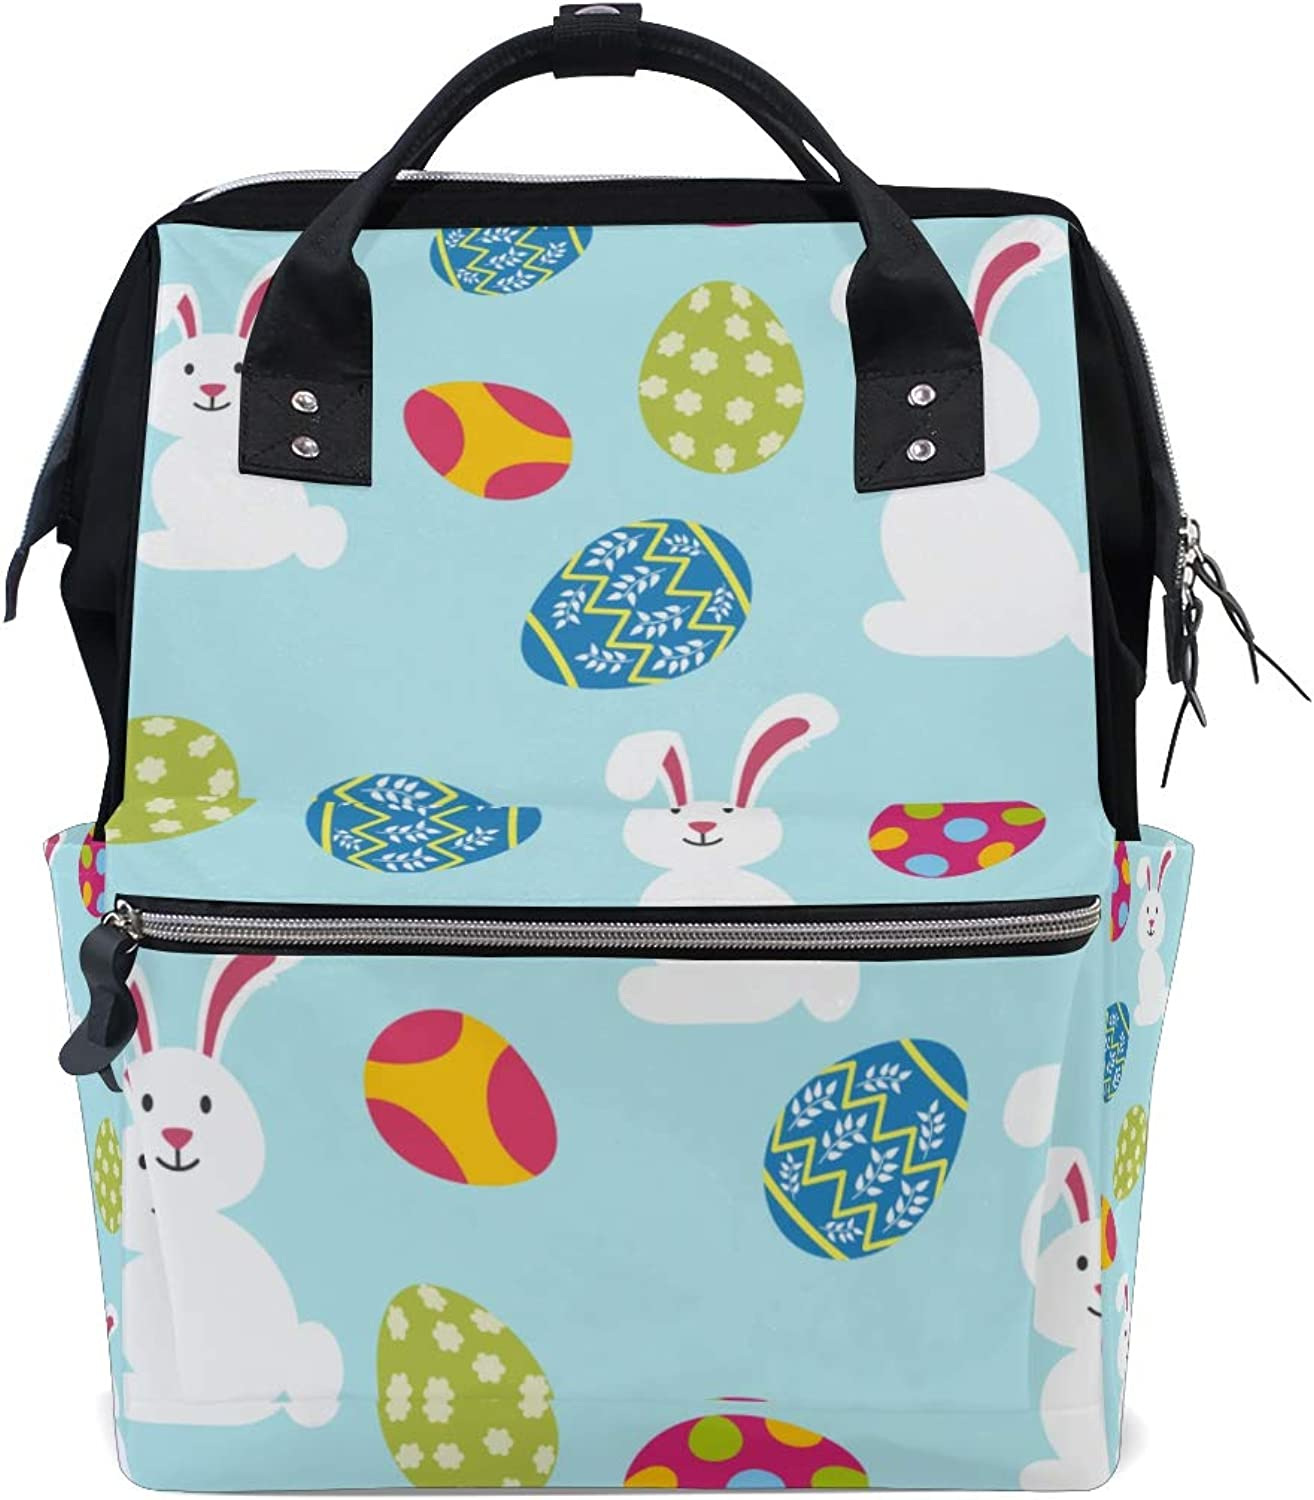 ColourLife Diaper bag Backpack White Bunny With Eggs Casual Daypack Multifunctional Nappy Bags for Women Girls